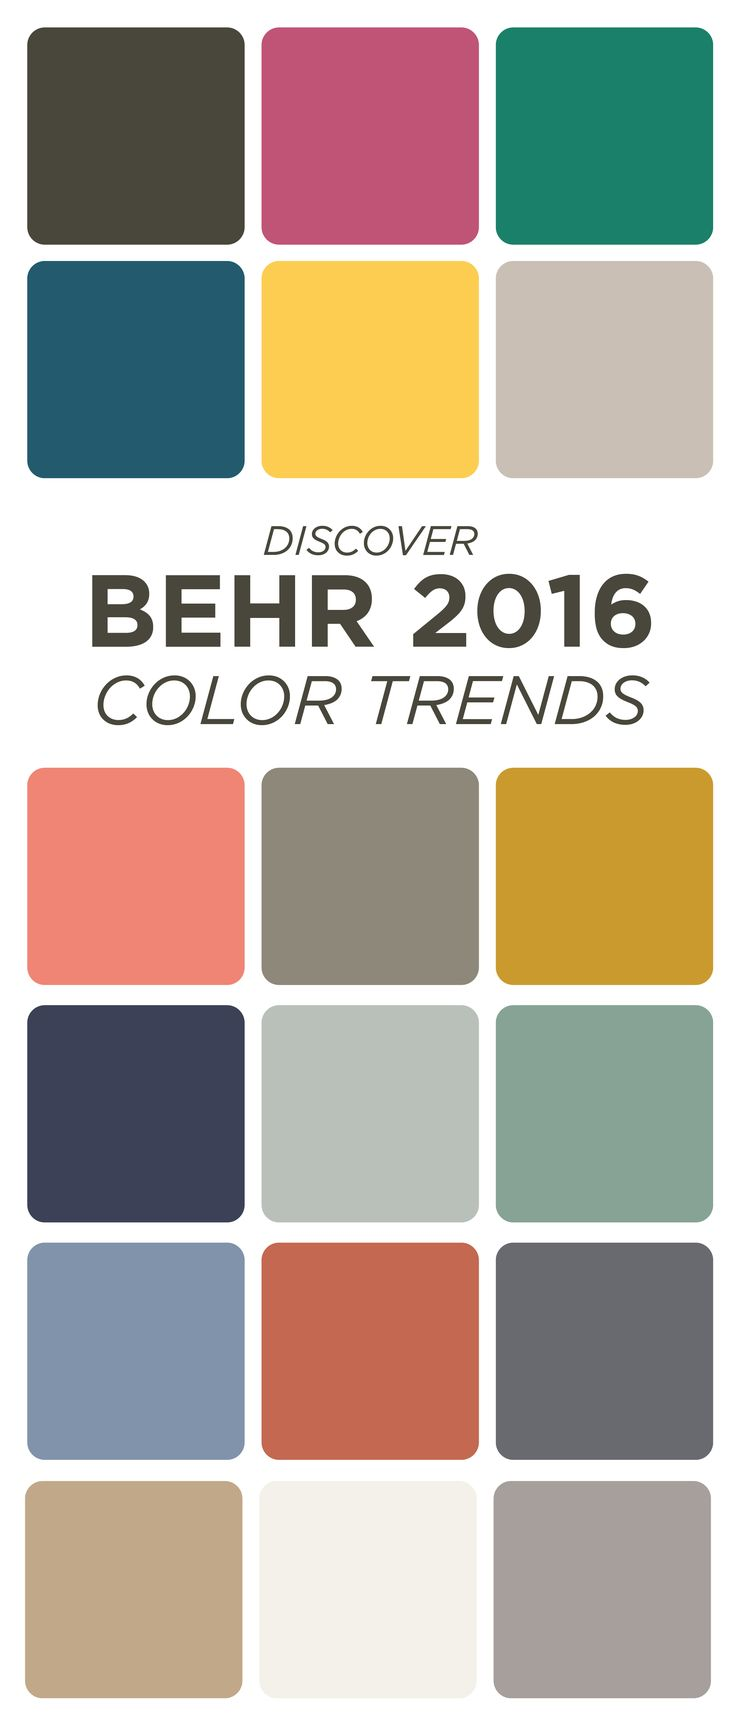 1000 images about behr 2016 color trends on pinterest for Shades of neutral colors